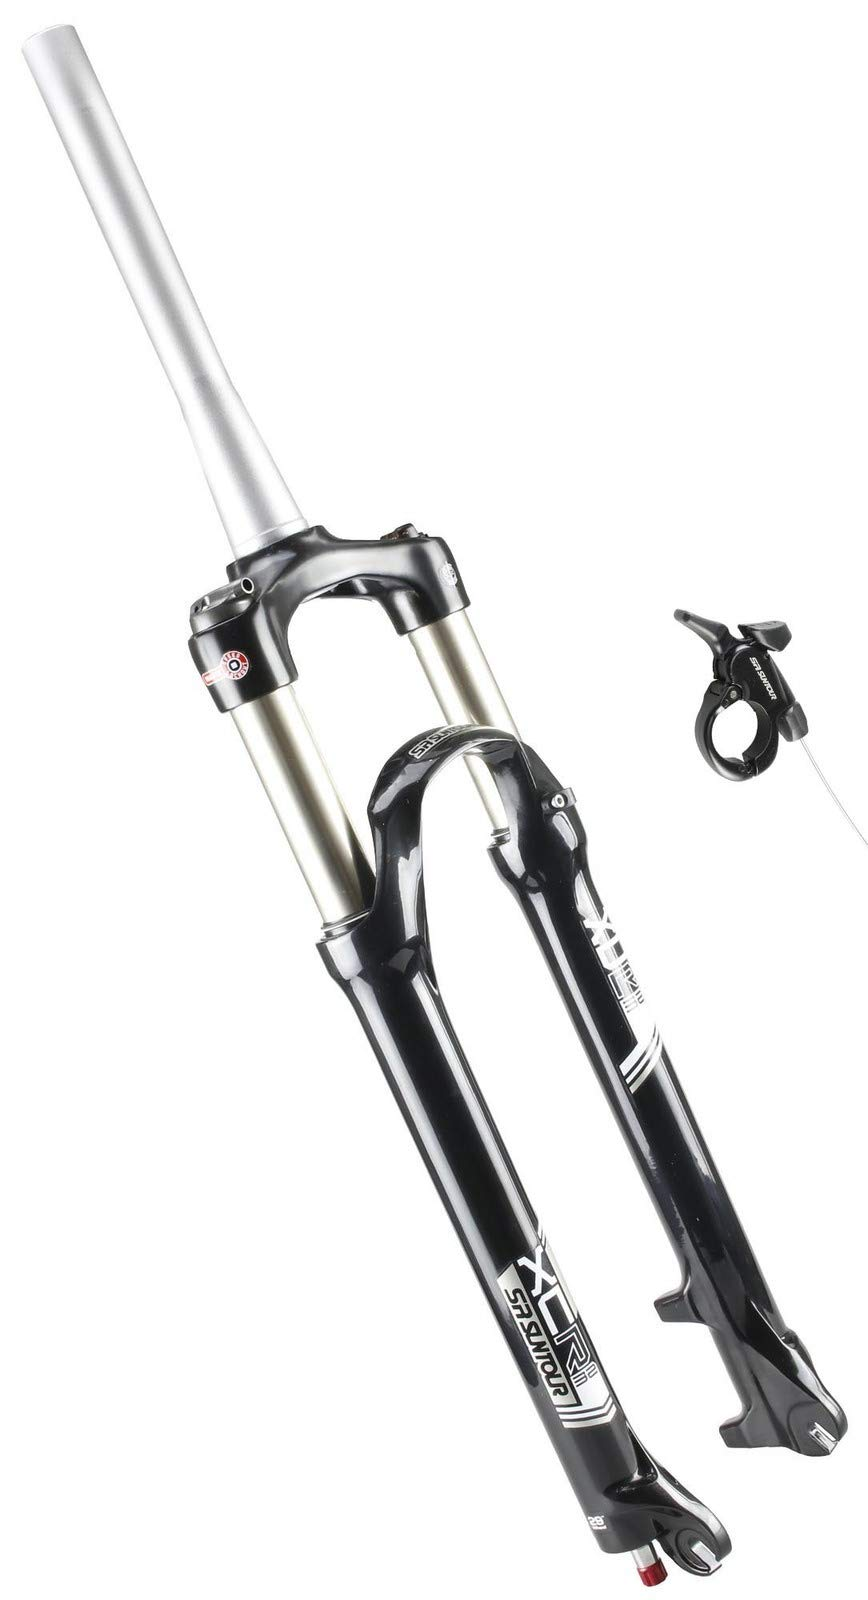 SR Suntour XCR32 MTB Bicycle Fork 29er Coil T100mm 9mm Tapered Remote Lockout by SR Suntour